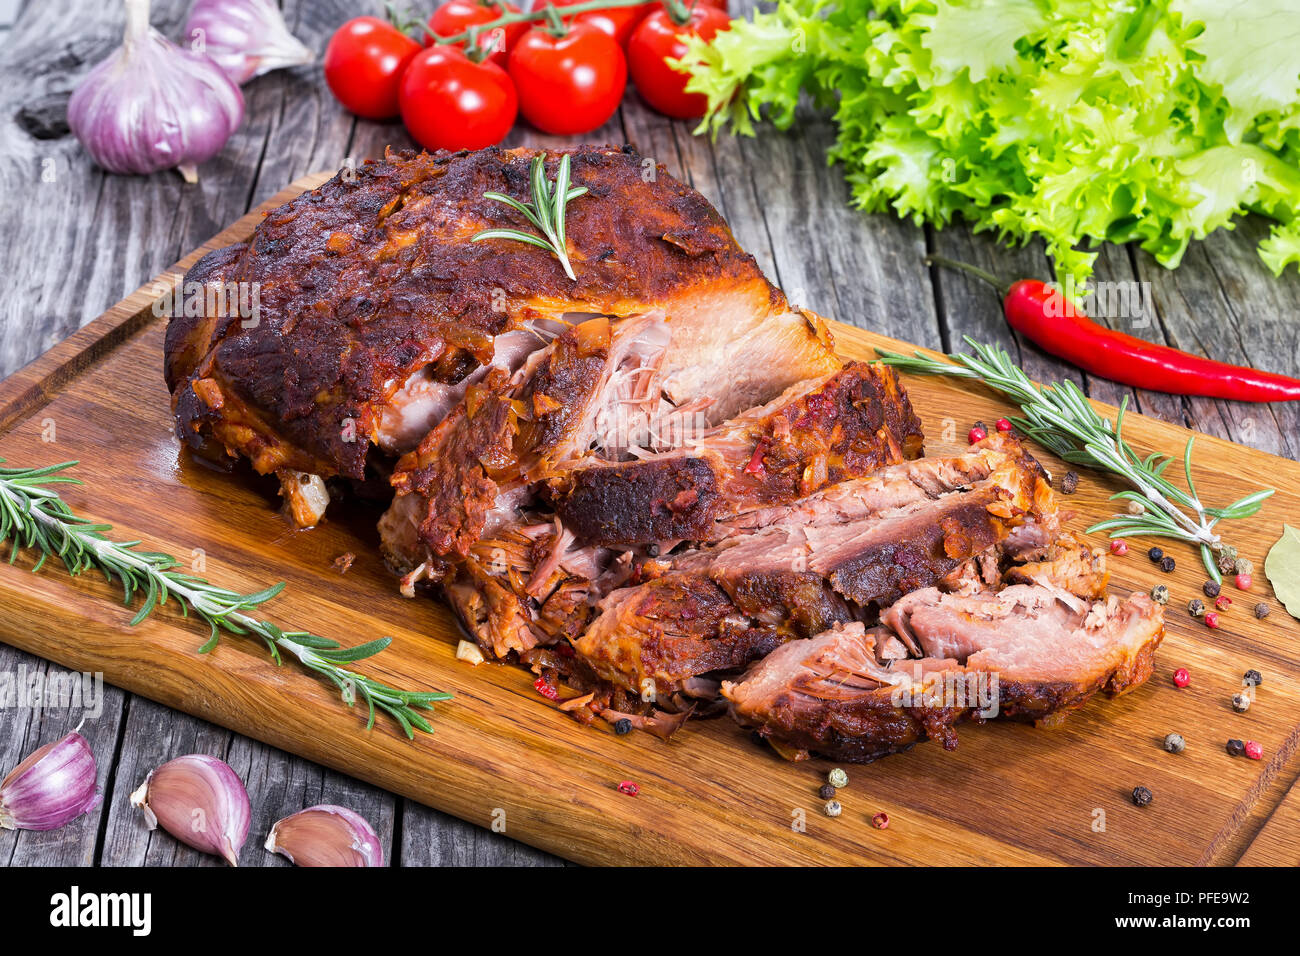 Big Piece of Slow Cooked Oven-Barbecued Pulled Pork shoulder on chopping board with mixed peppercorns, rosemary and garlic, tomato and lettuce salad o Stock Photo